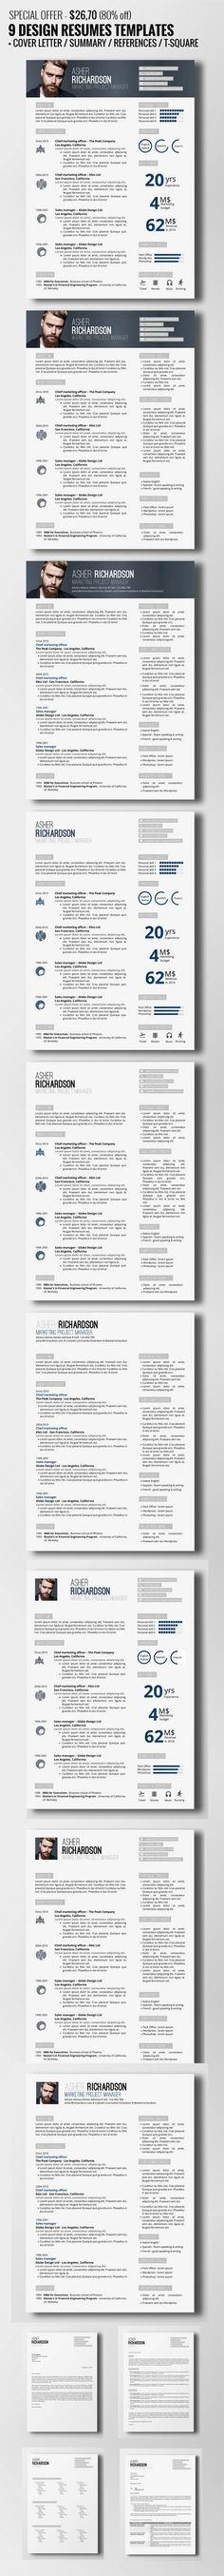 435 best Resume images on Pinterest Resume design, Design resume - chef templates